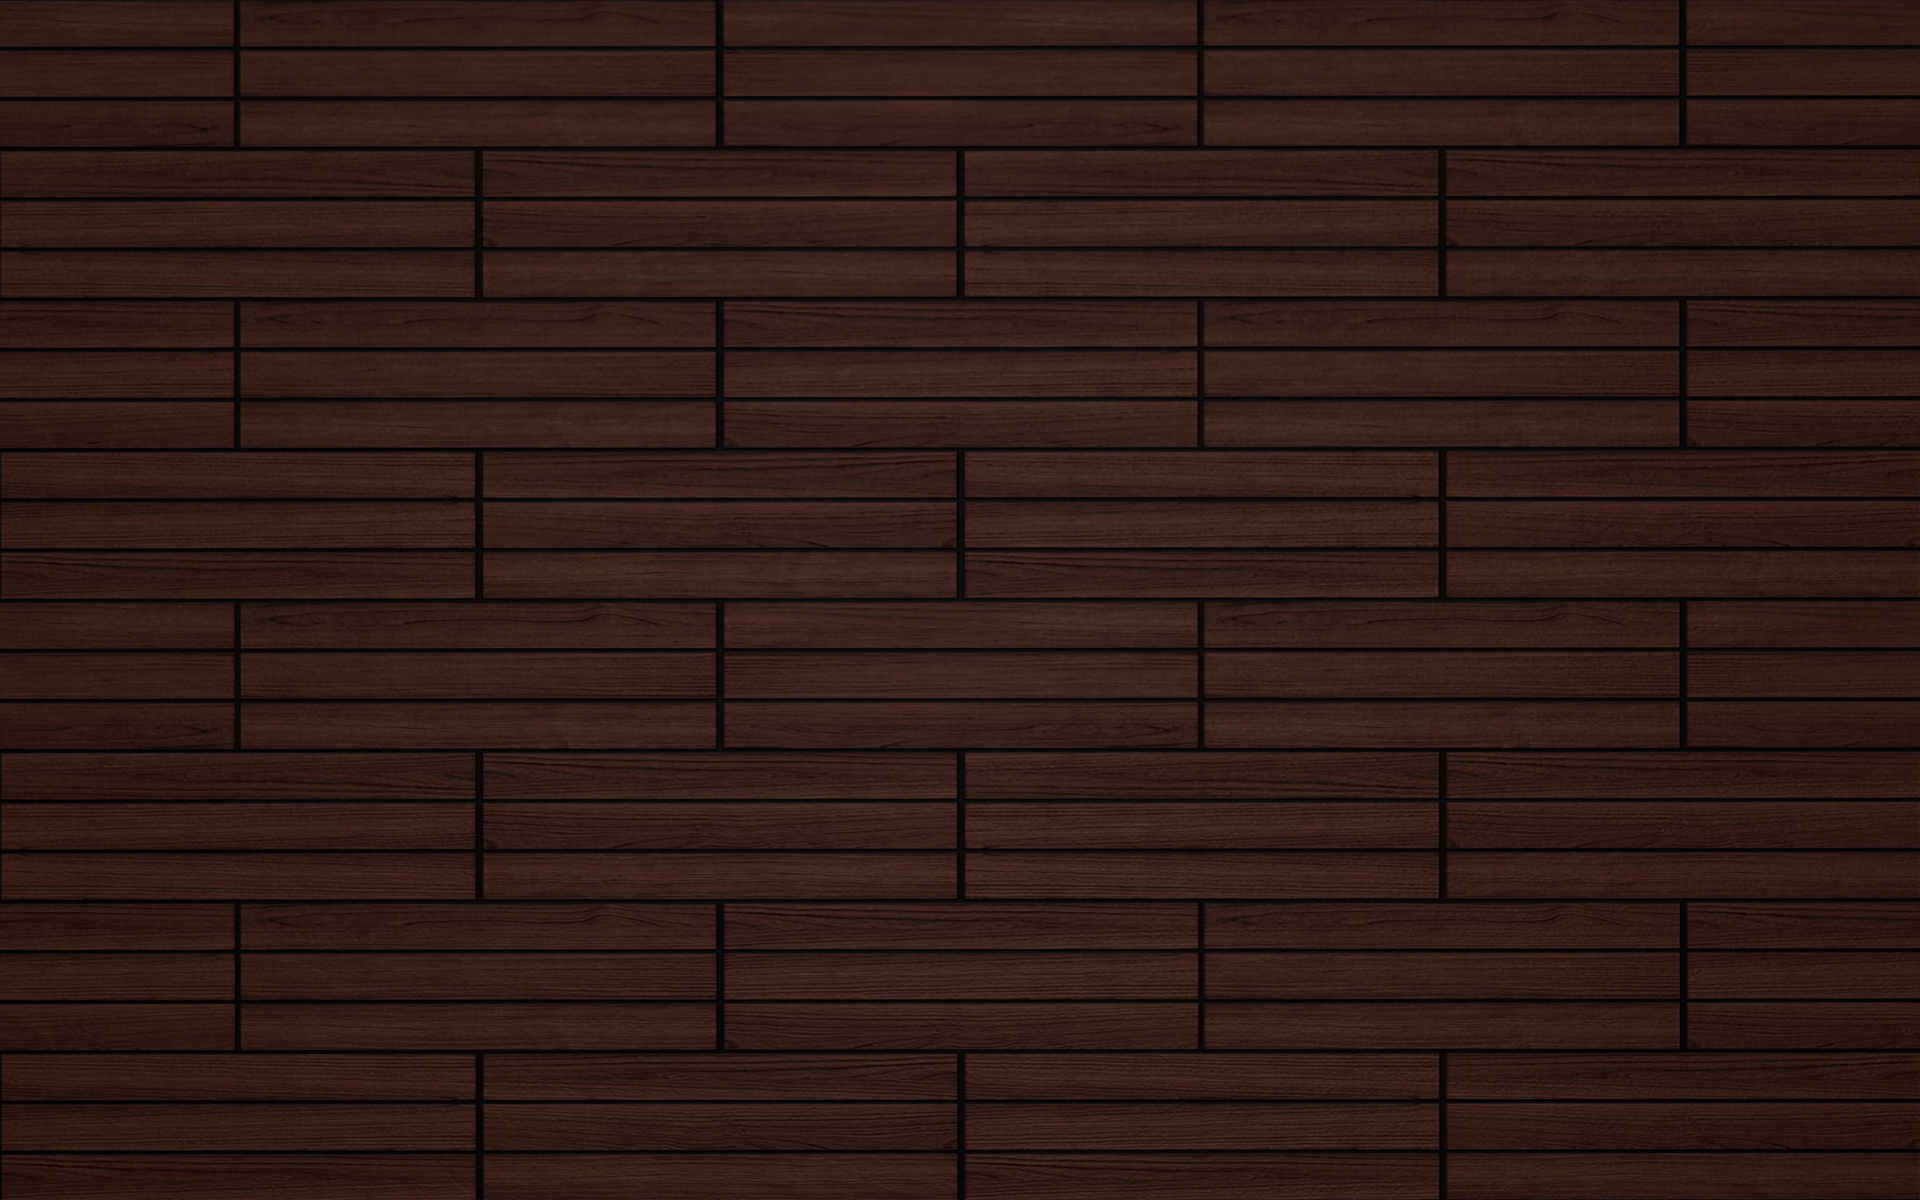 abstract wallpaper set 7 wood2 171 awesome wallpapers